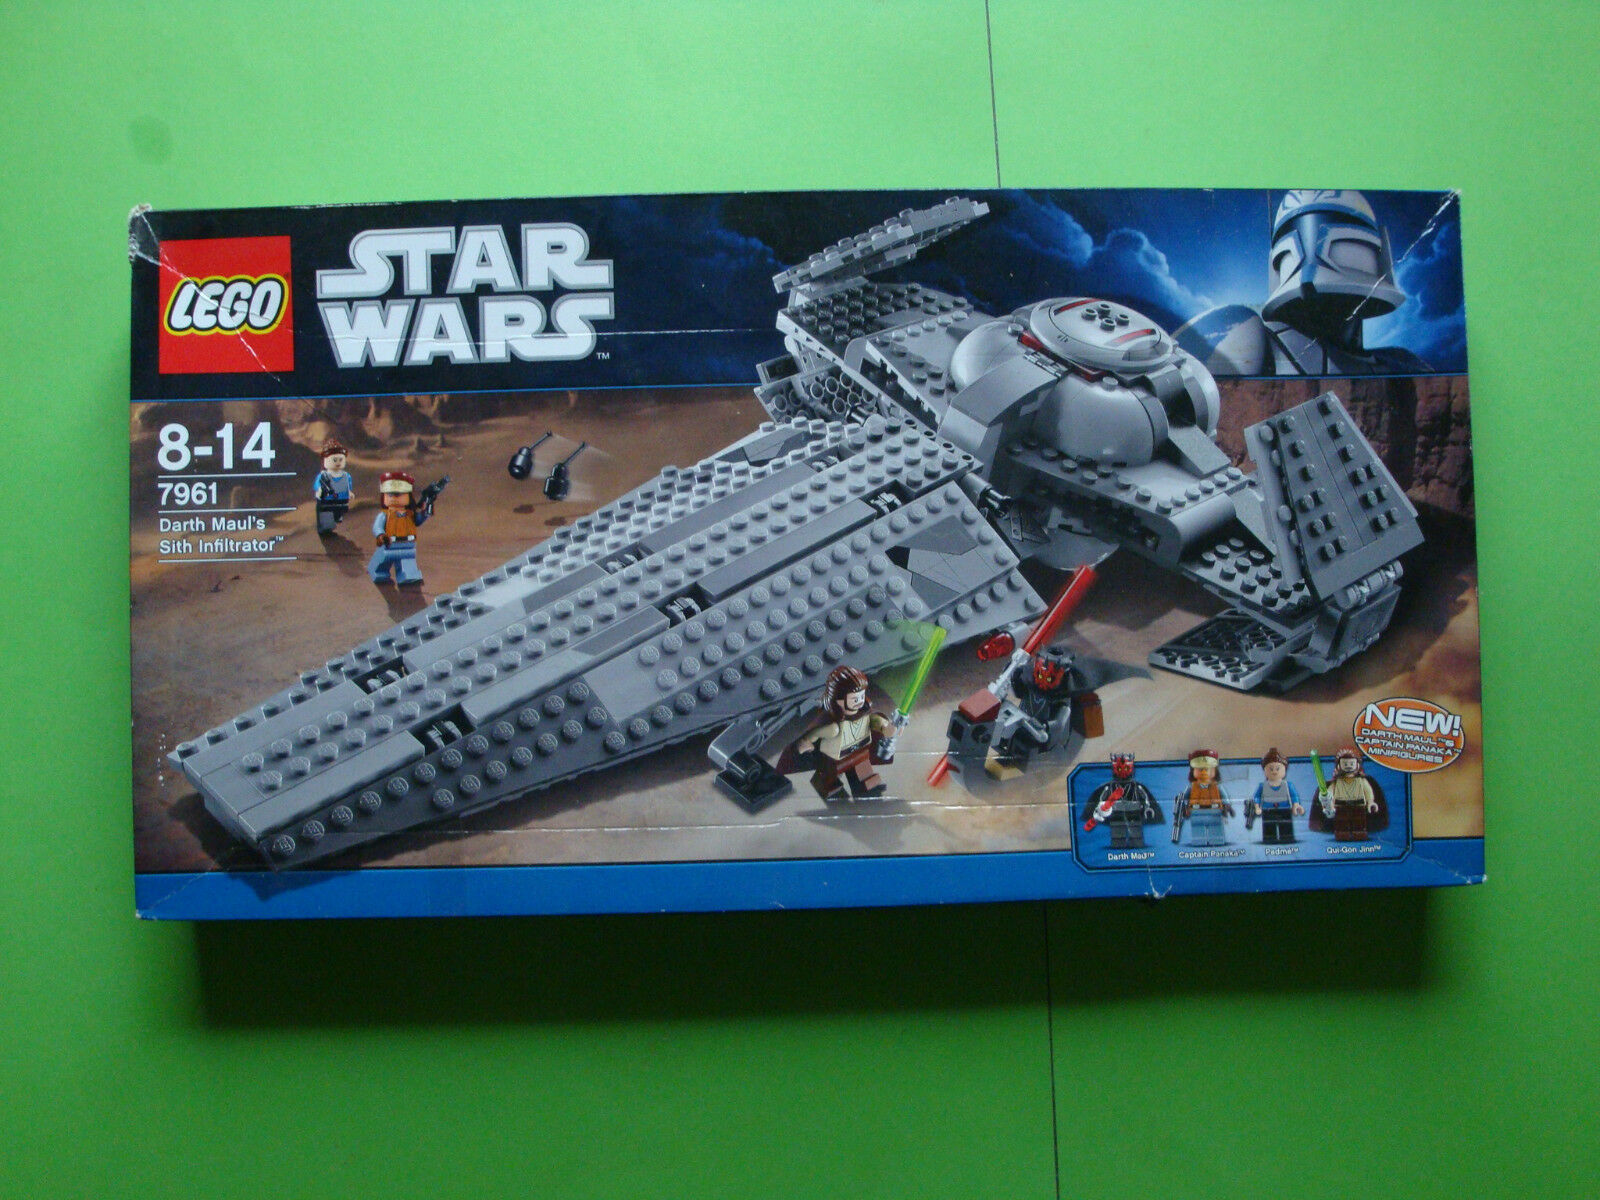 LEGO STAR WARS DARTH MAUL'S SITH INFILTRATOR  7961  con imballaggio